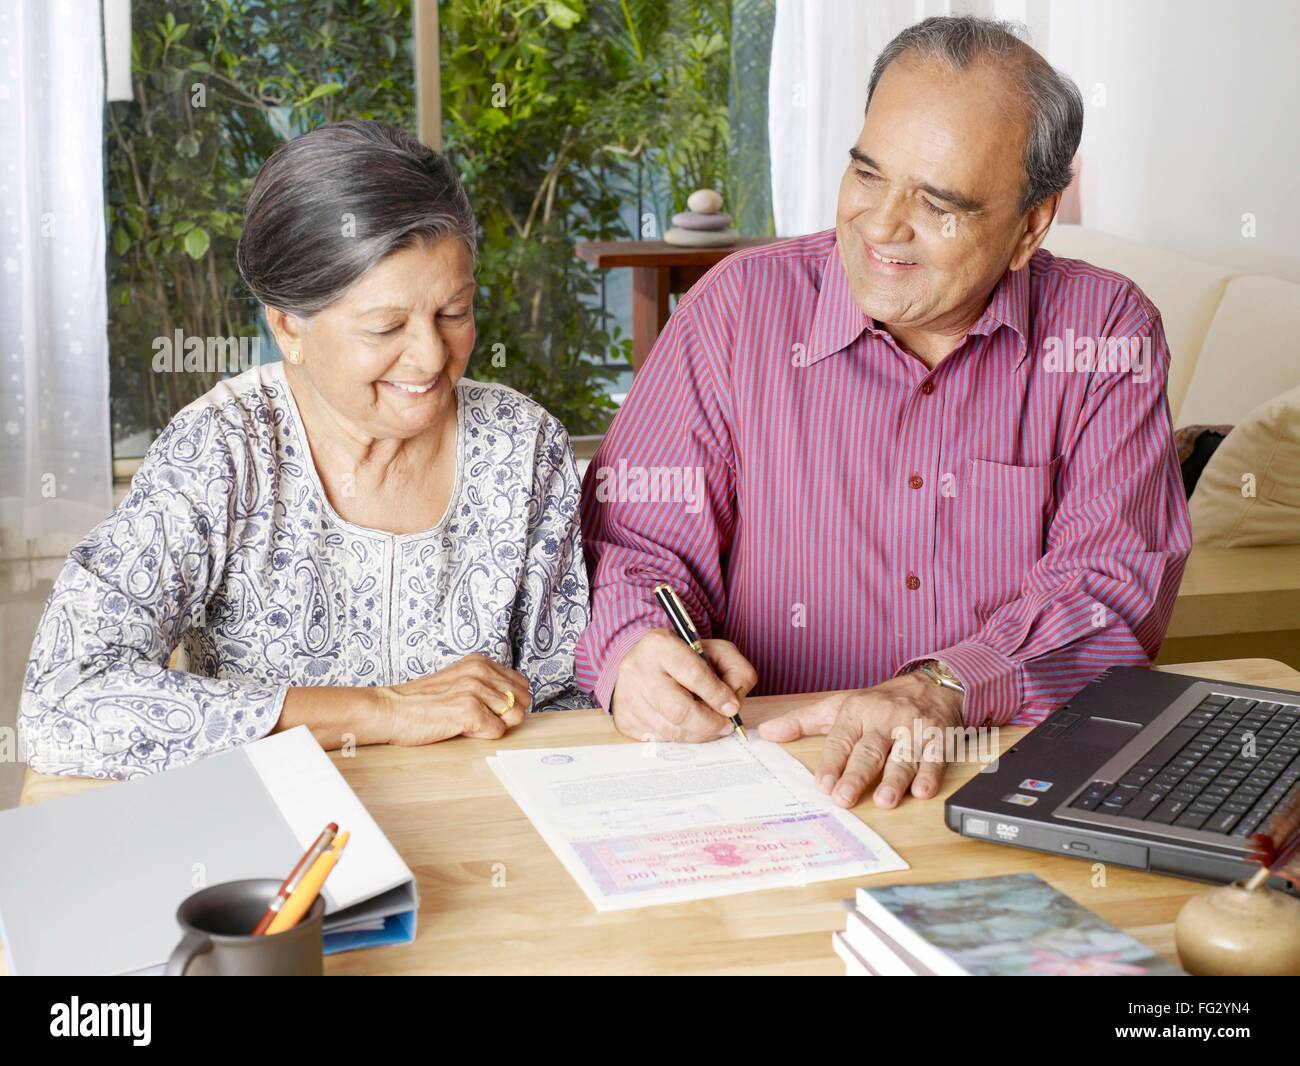 Old couple preparing legal document signing on stamp paper - MR#702T,702S - Stock Image